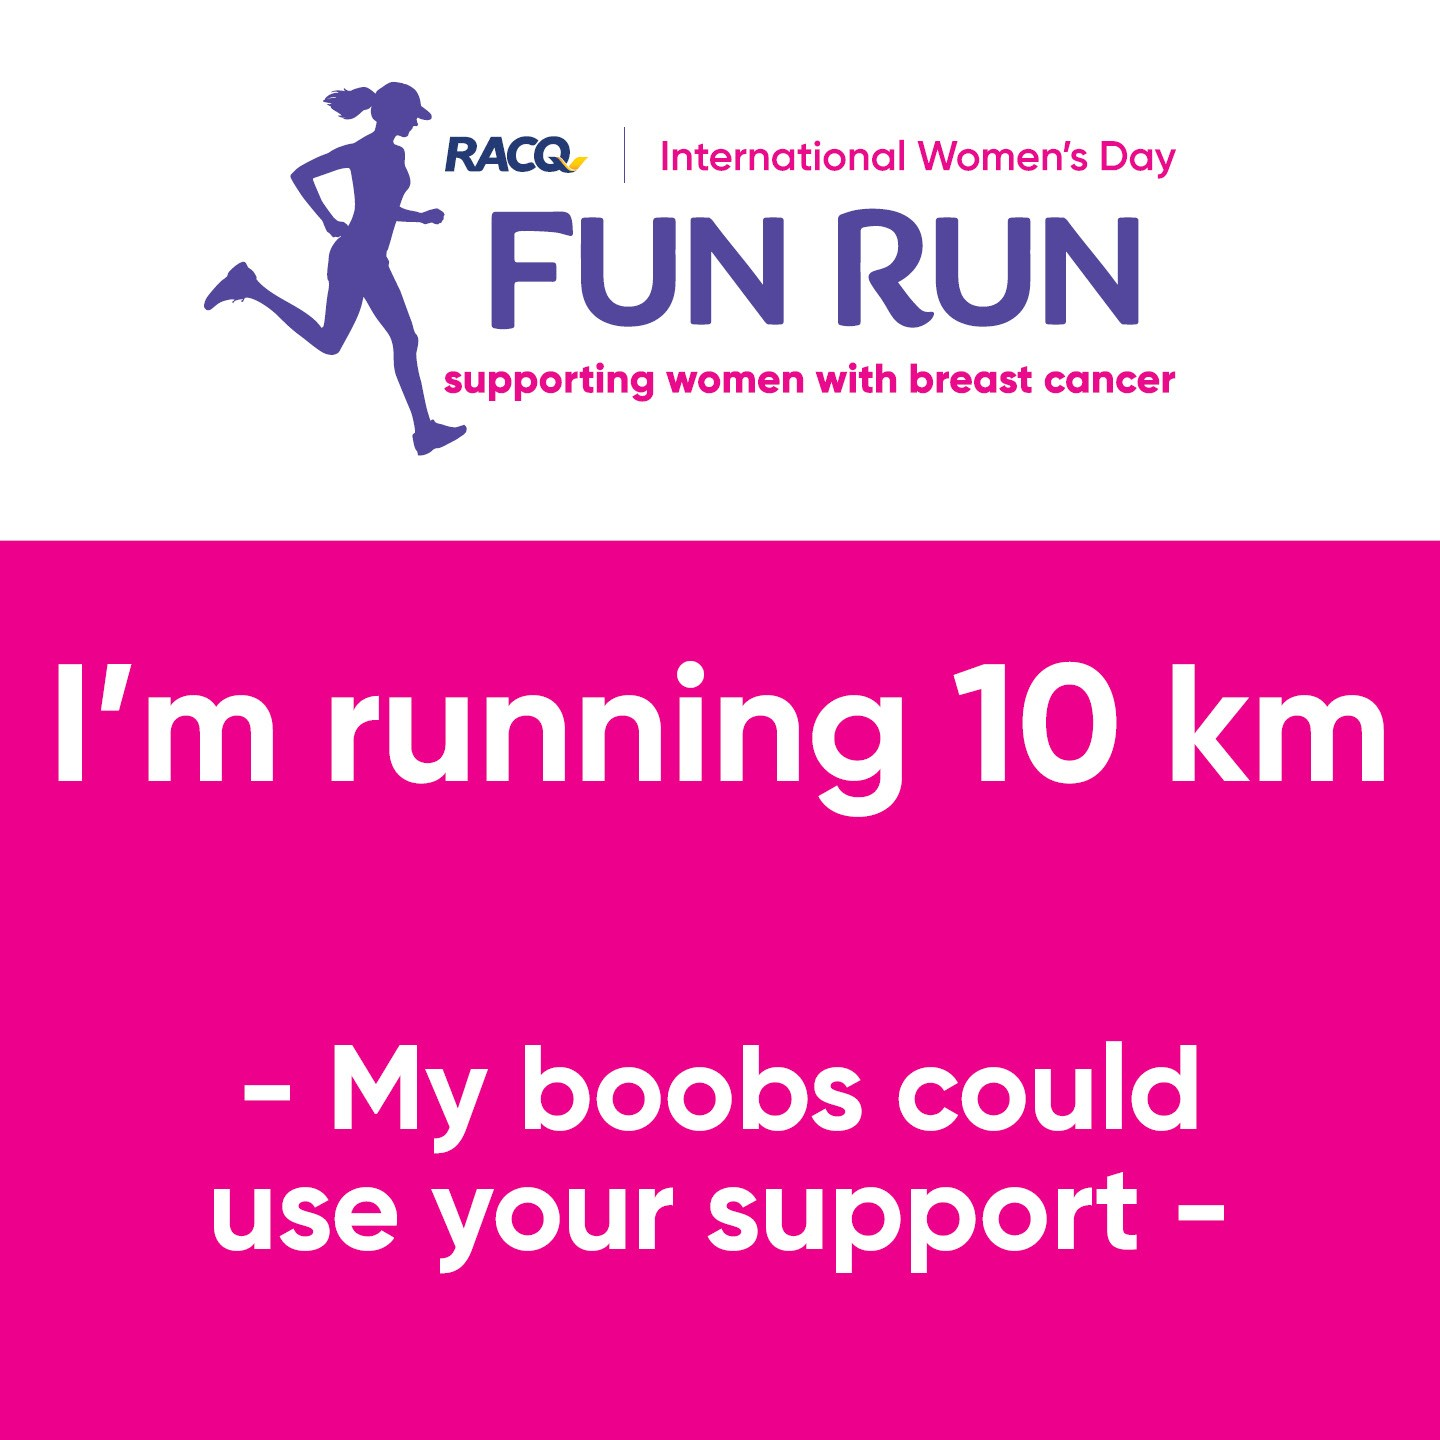 Instagram - I'm running 10 km - My boobs could use your support